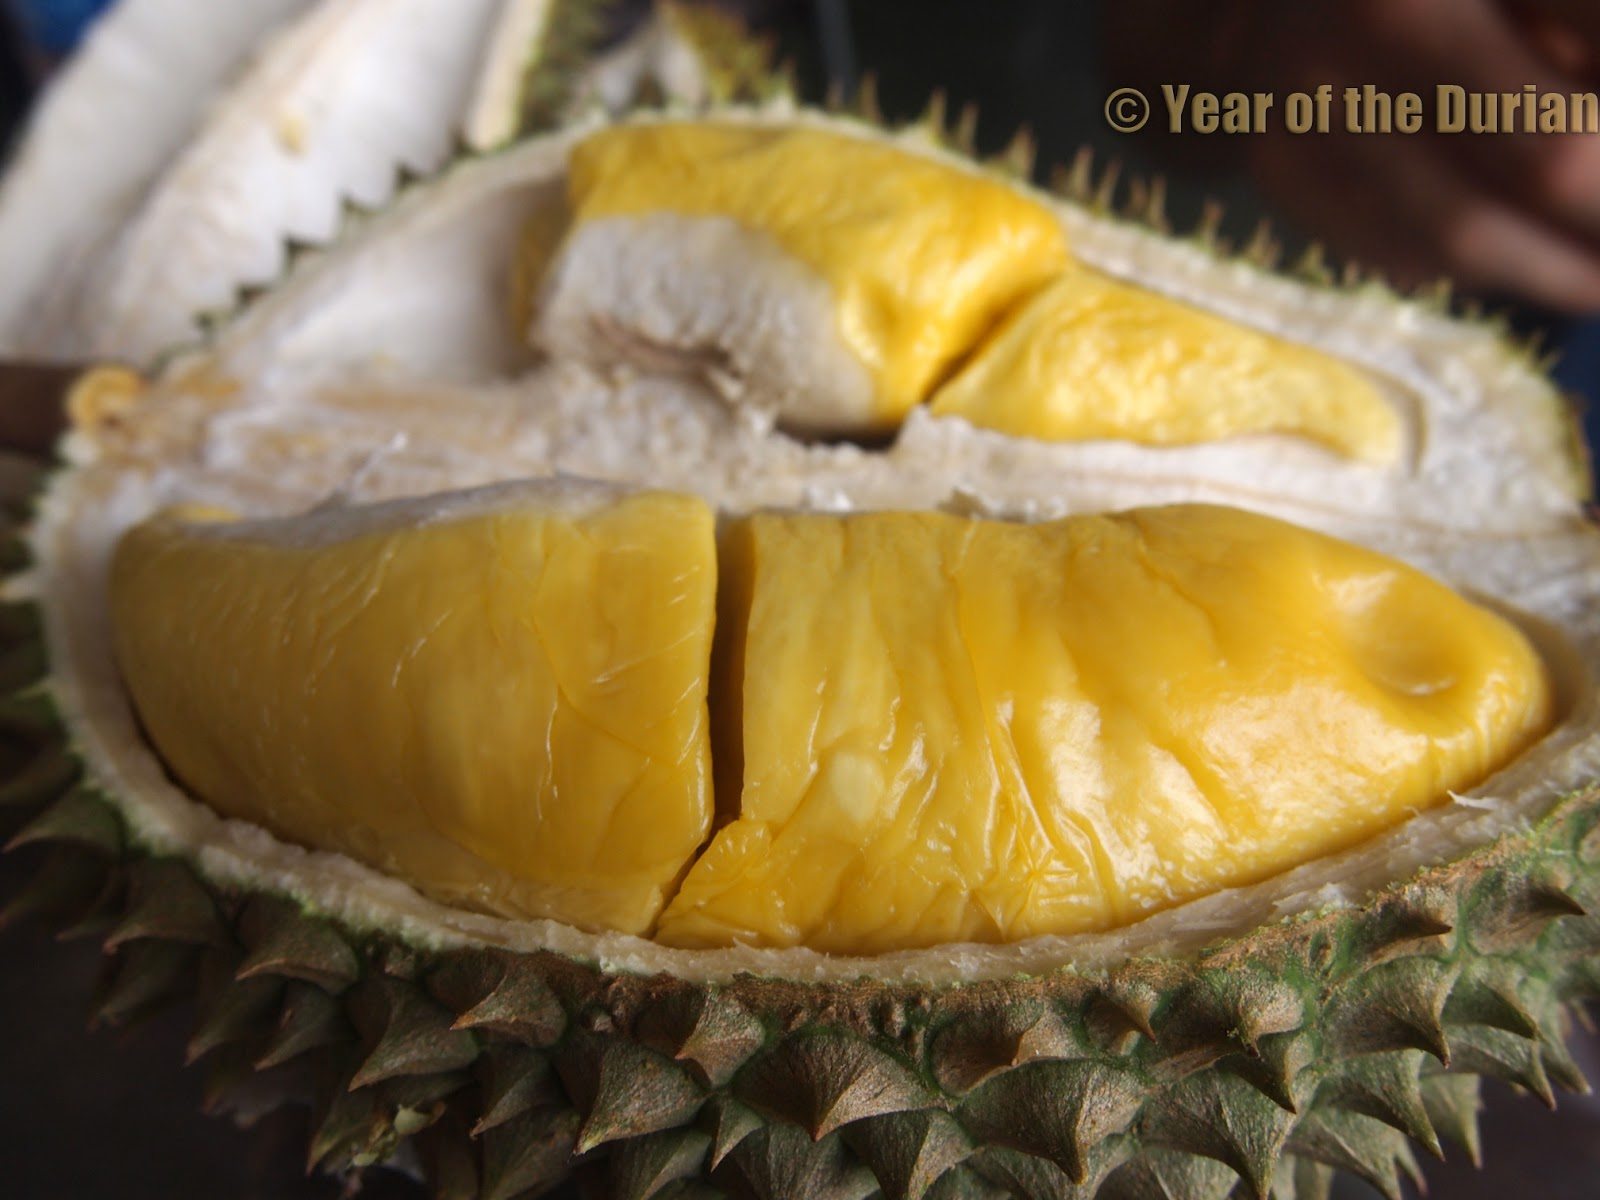 How to Identify Musang King and D24